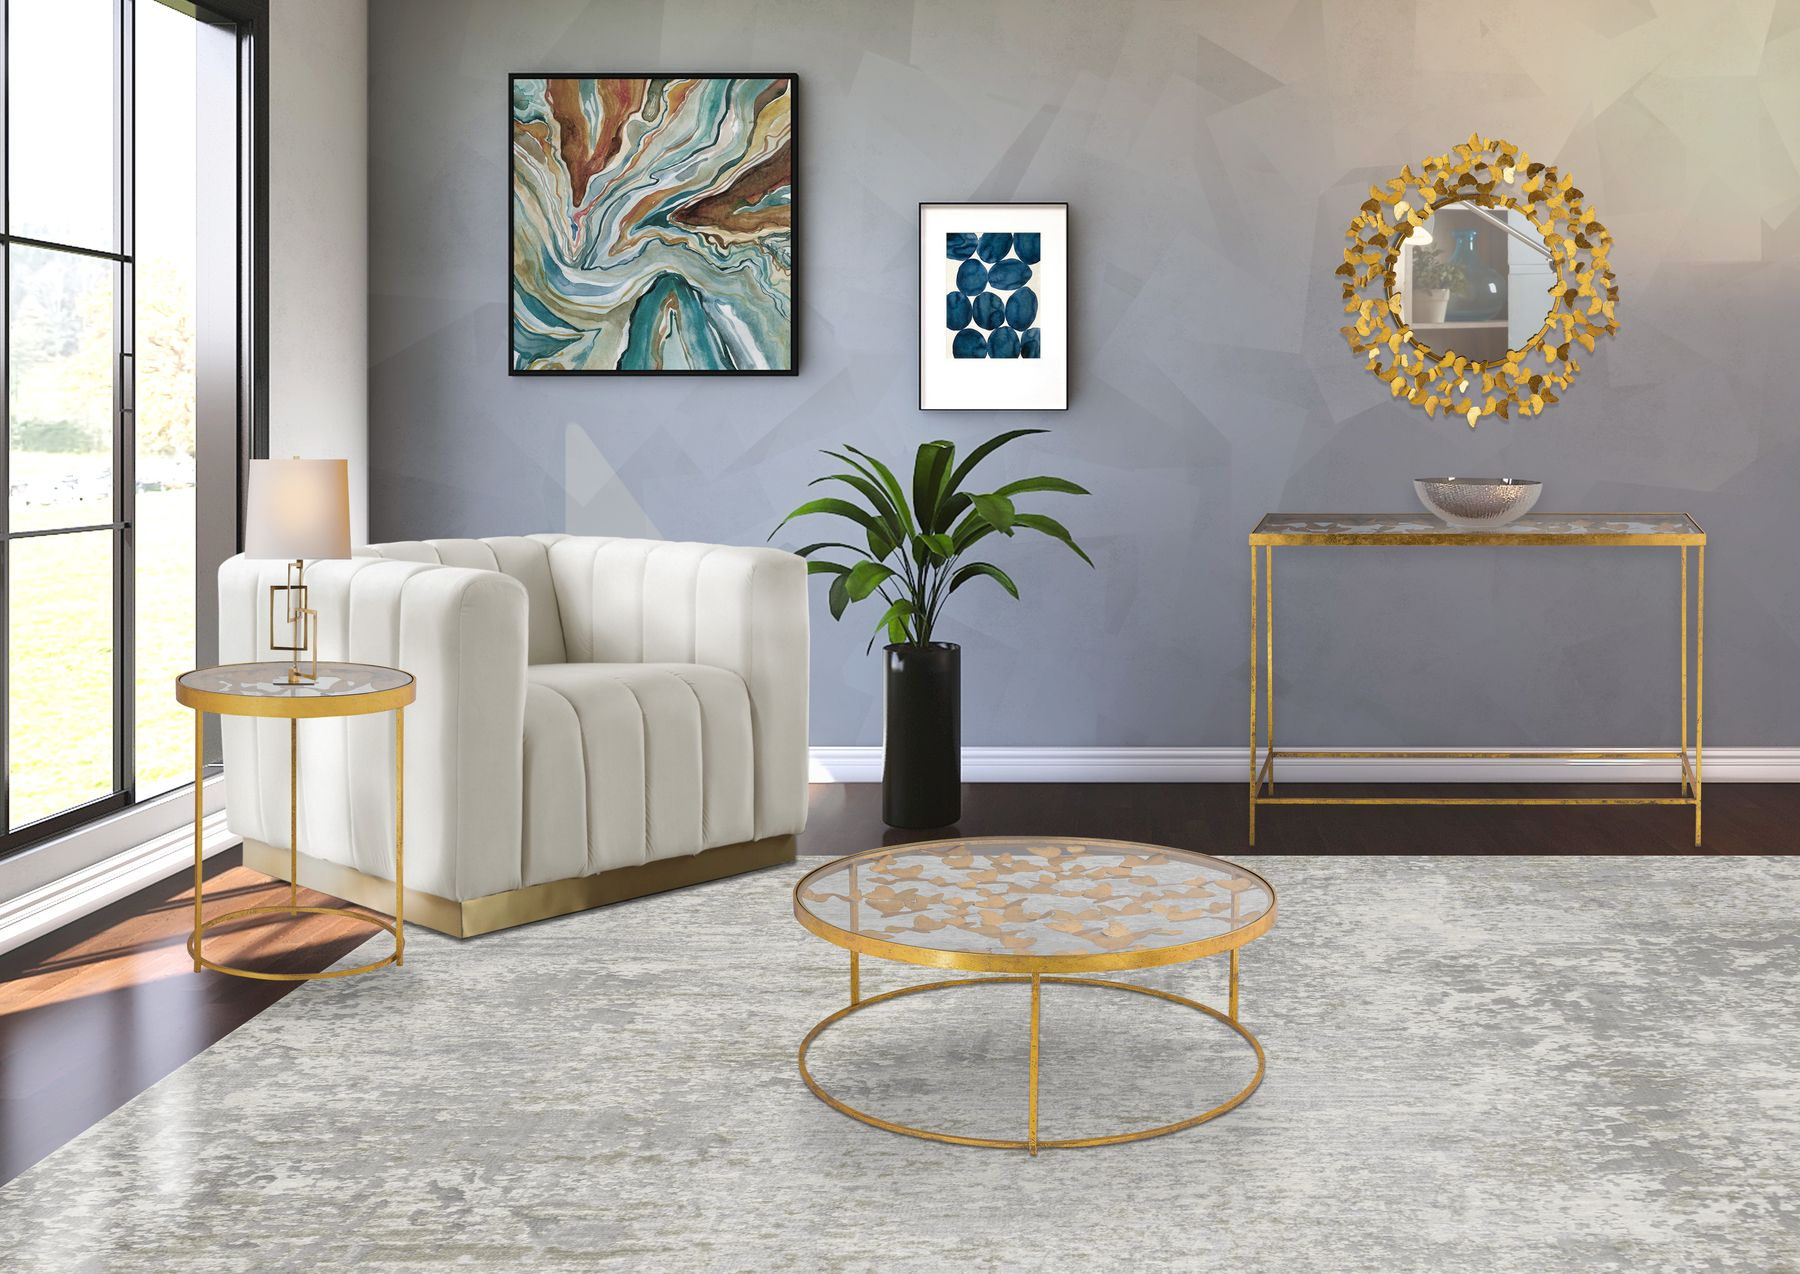 Butterfly Gold Coffee Table 470 Meridian Furniture Coffee Tables In 2021 Meridian Furniture Coffee Table Gold Coffee Table [ 1274 x 1800 Pixel ]